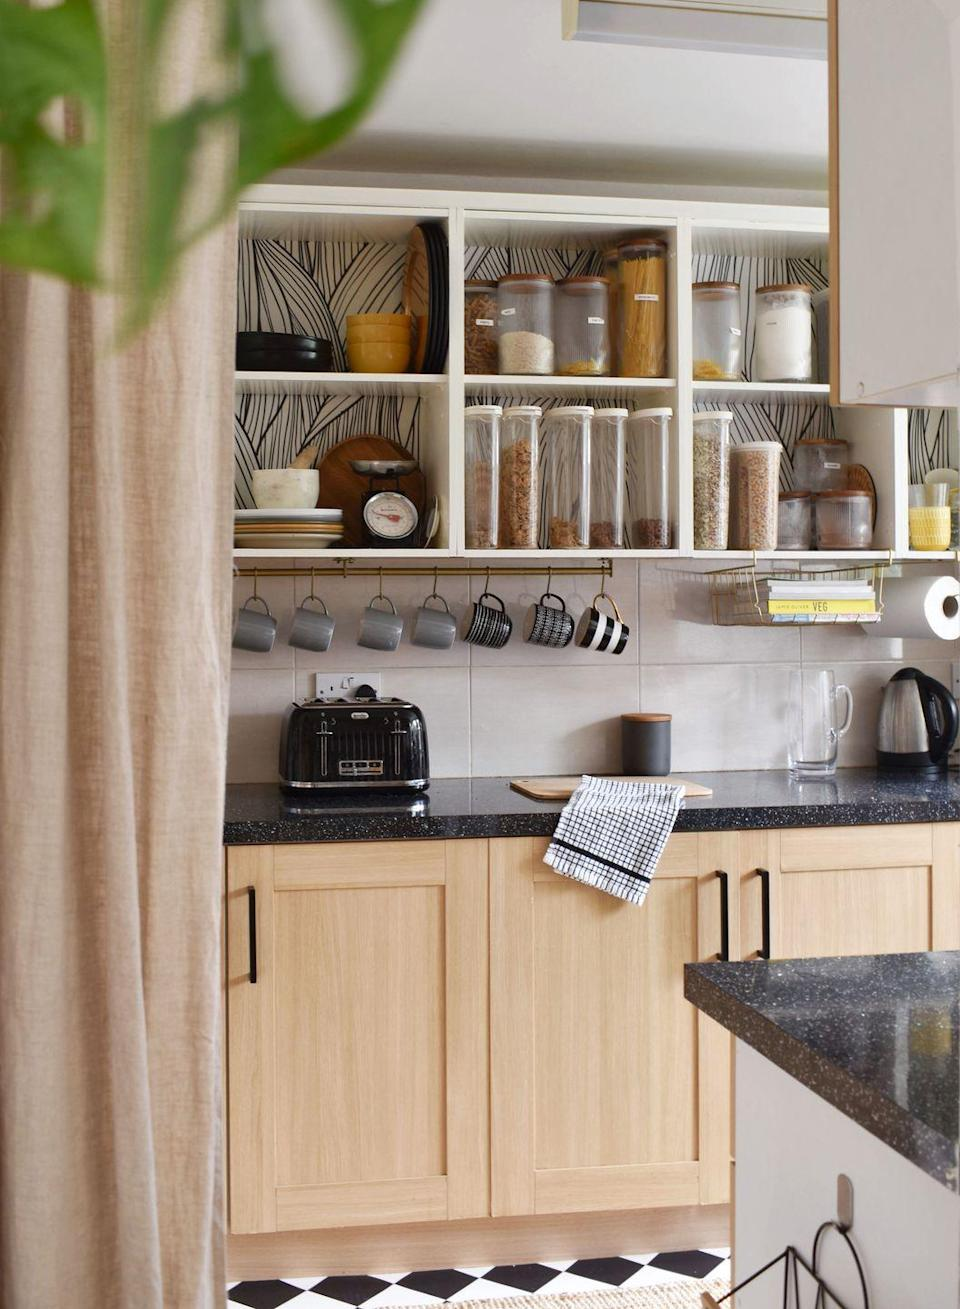 """<p>""""I removed the doors from my top cabinets to create an open shelving feel. I applied removable wallpaper to the backing of the cabinets to add a little character. The fact that I've been able to display my favourite kitchen accessories and dishware has given the space a little more personality.""""</p>"""